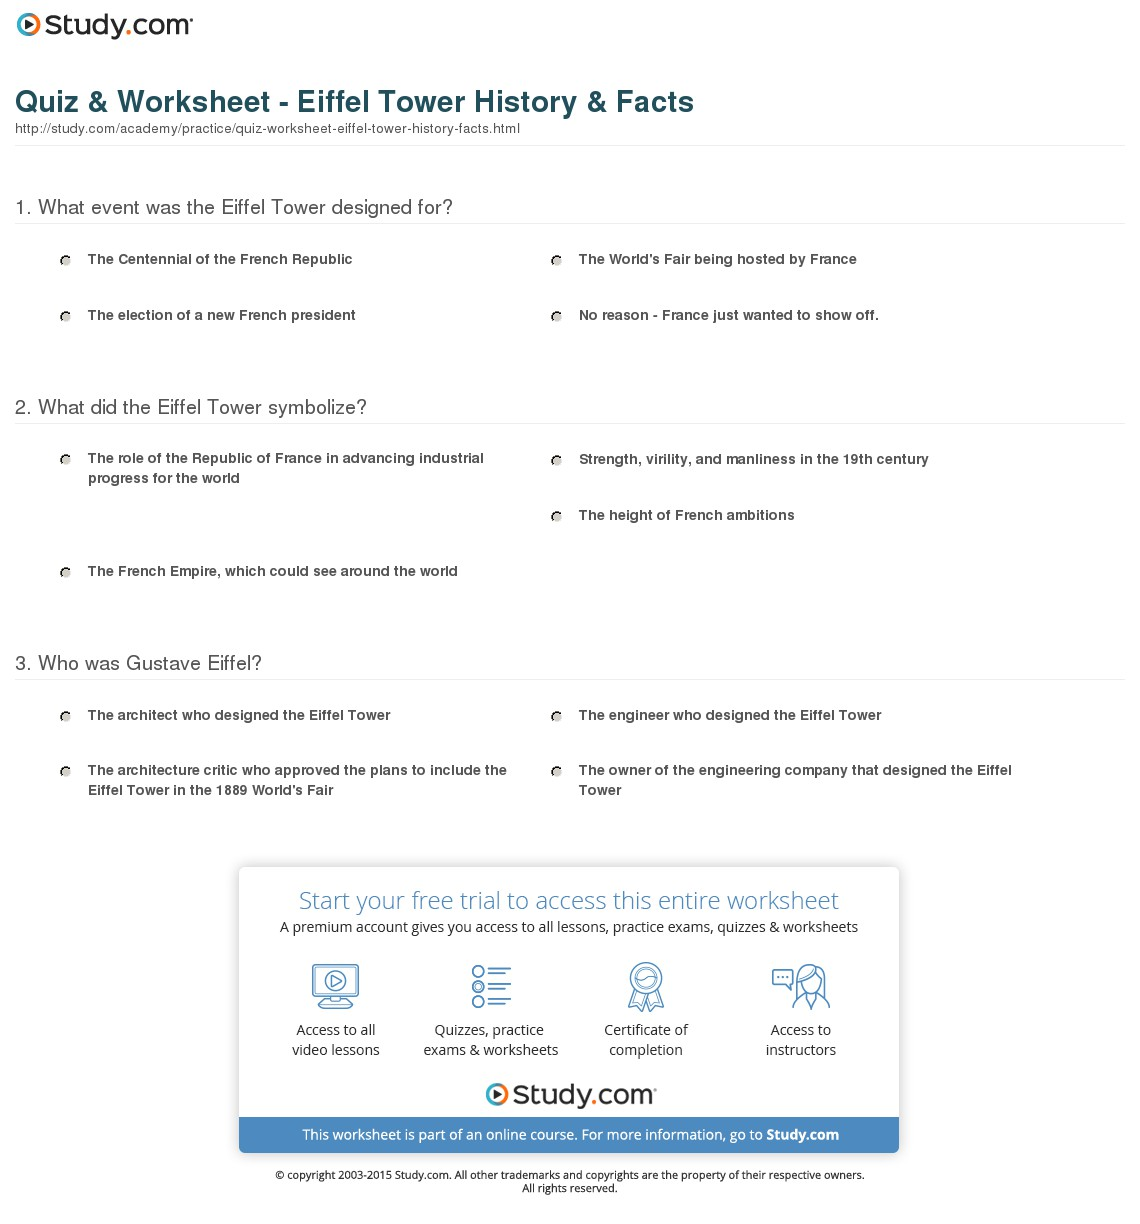 007 Quiz Worksheet Eiffel Tower History Facts Essay Example Exceptional Description Full